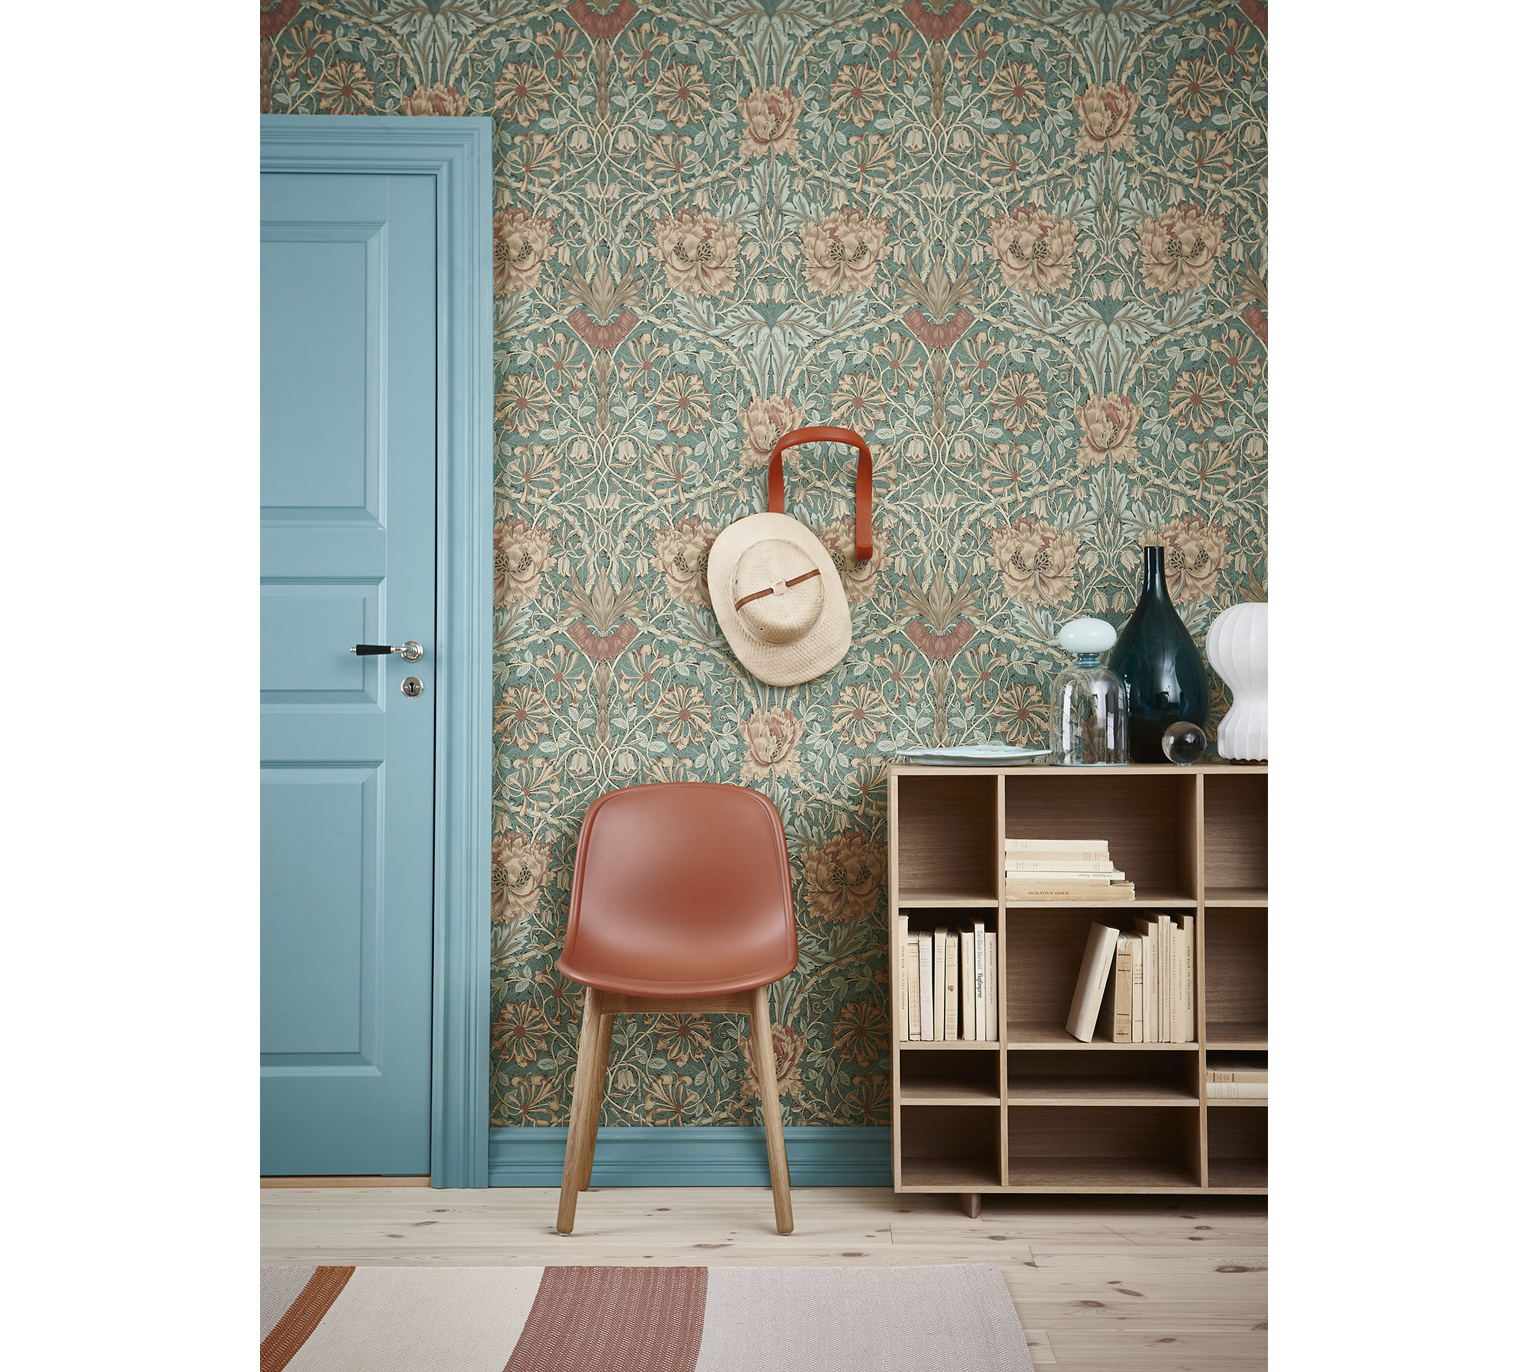 Swedoor + William Morris